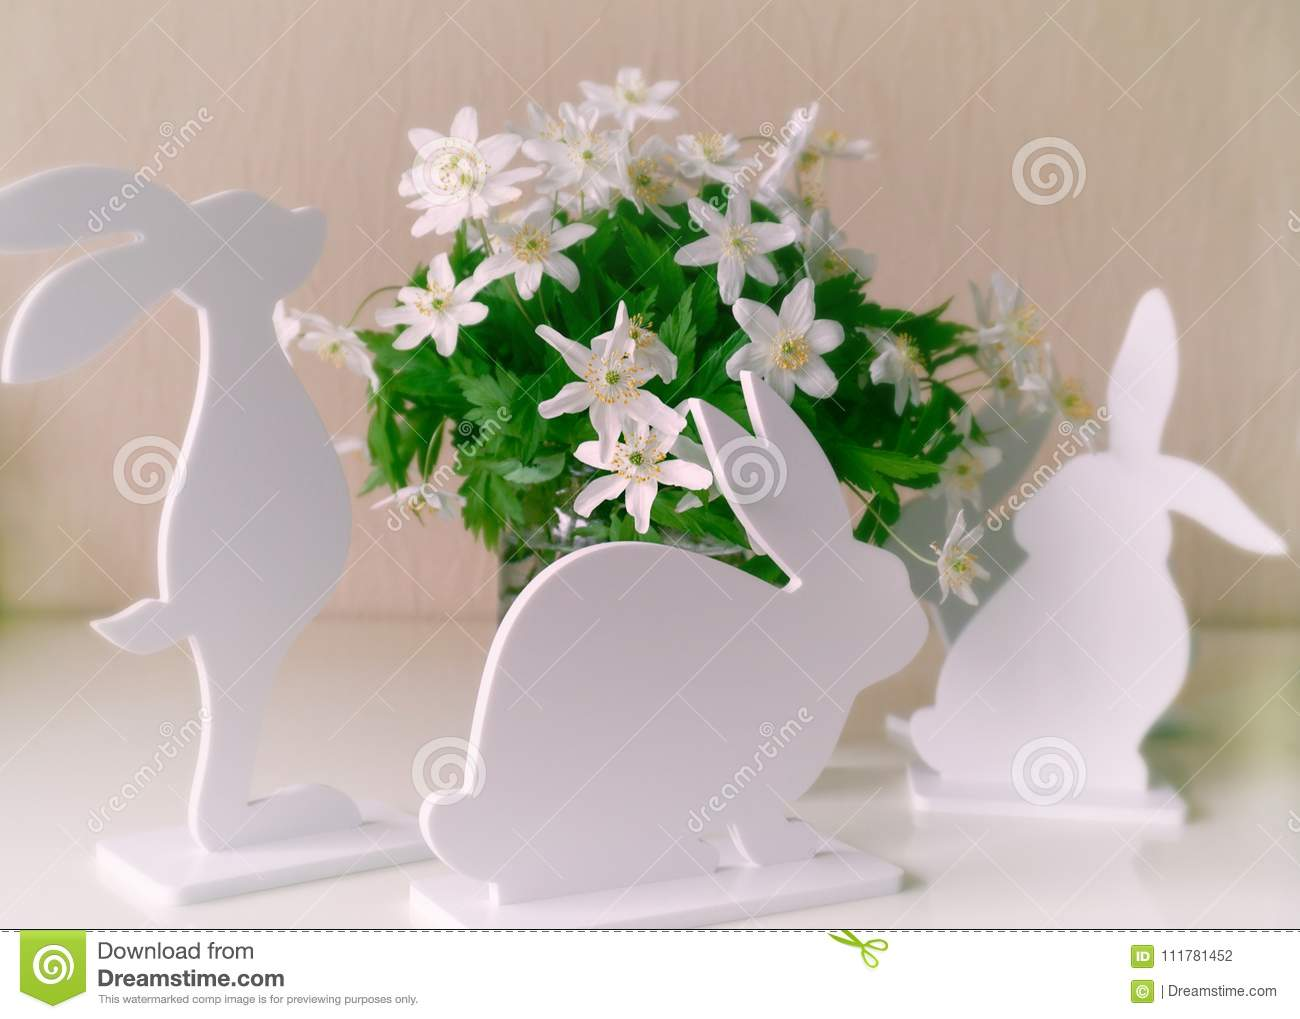 Easter bunnies with spring flowers stock photo image of download easter bunnies with spring flowers stock photo image of decorations flowers 111781452 mightylinksfo